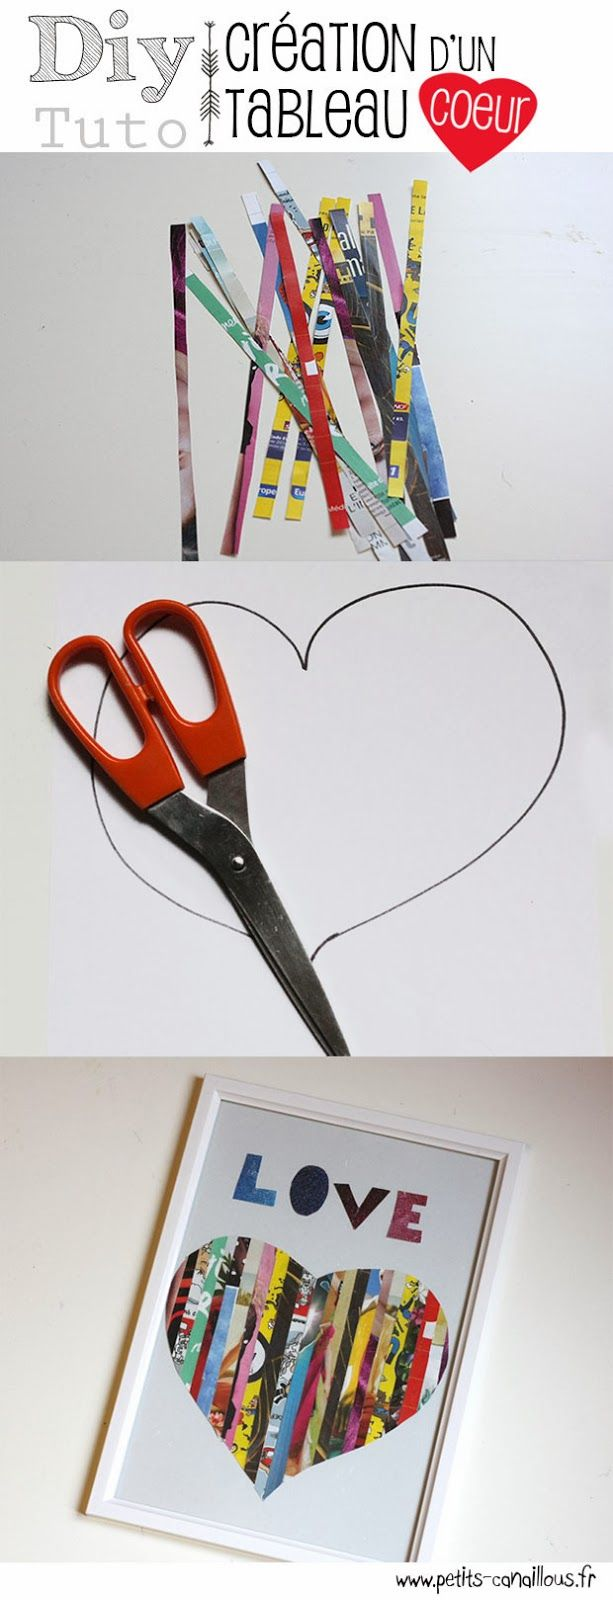 diy-creation-tableau-coeur-love